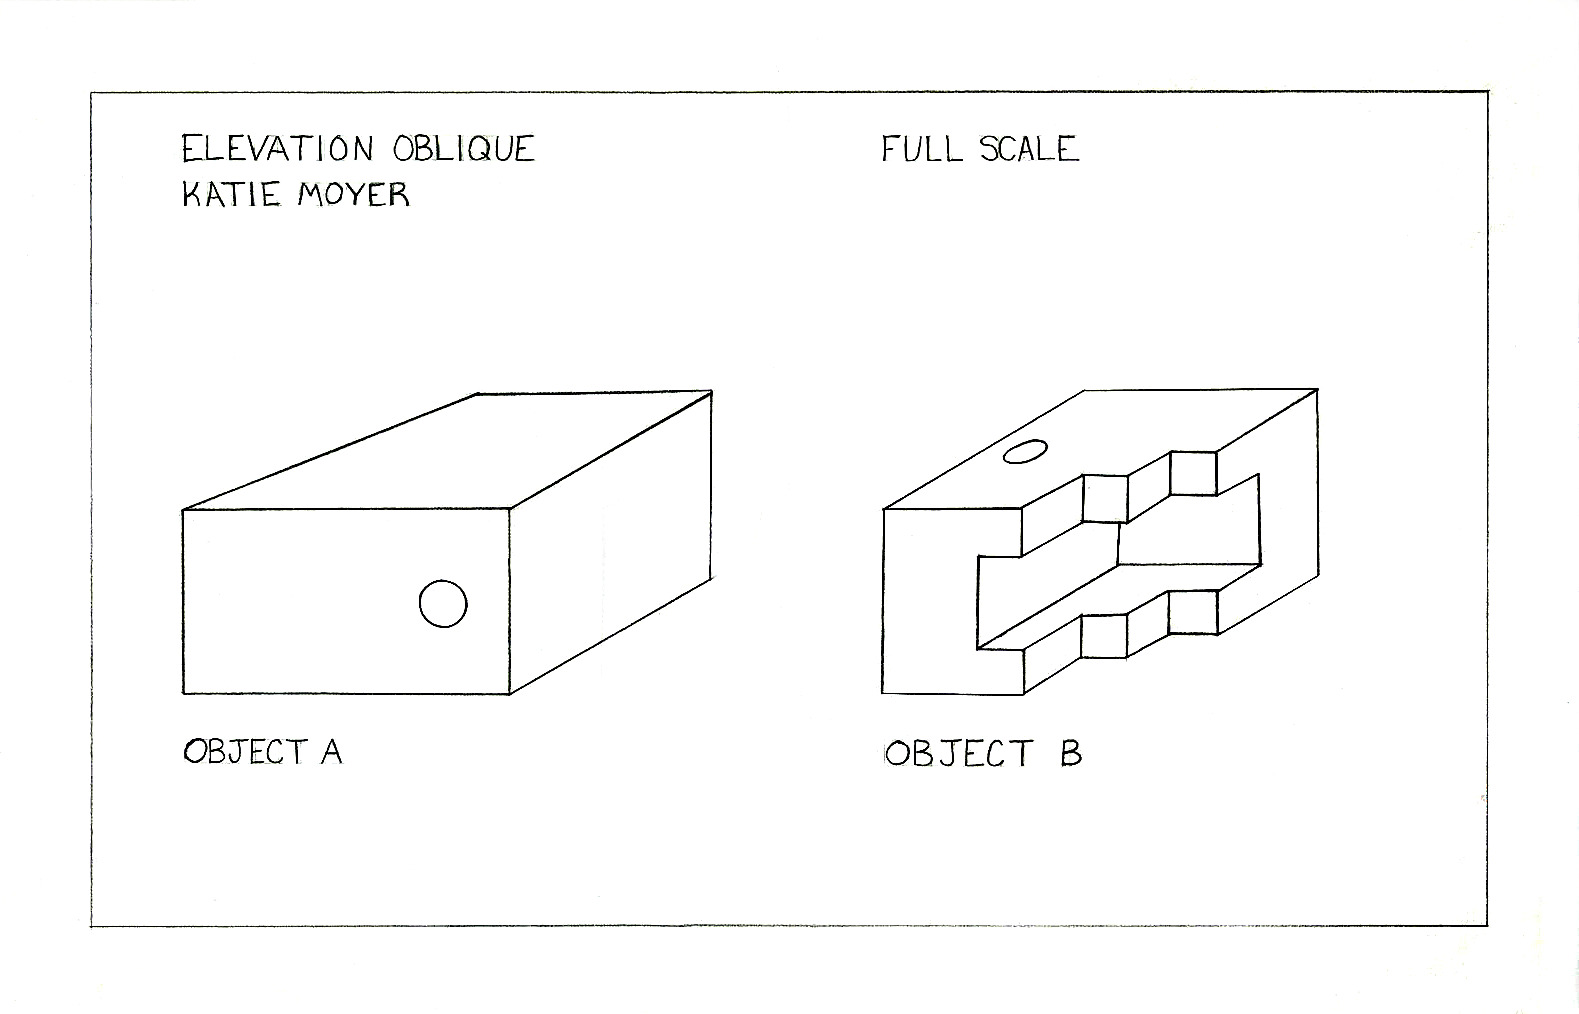 Plan Elevation Oblique : Katie s design drafting assignment object a b